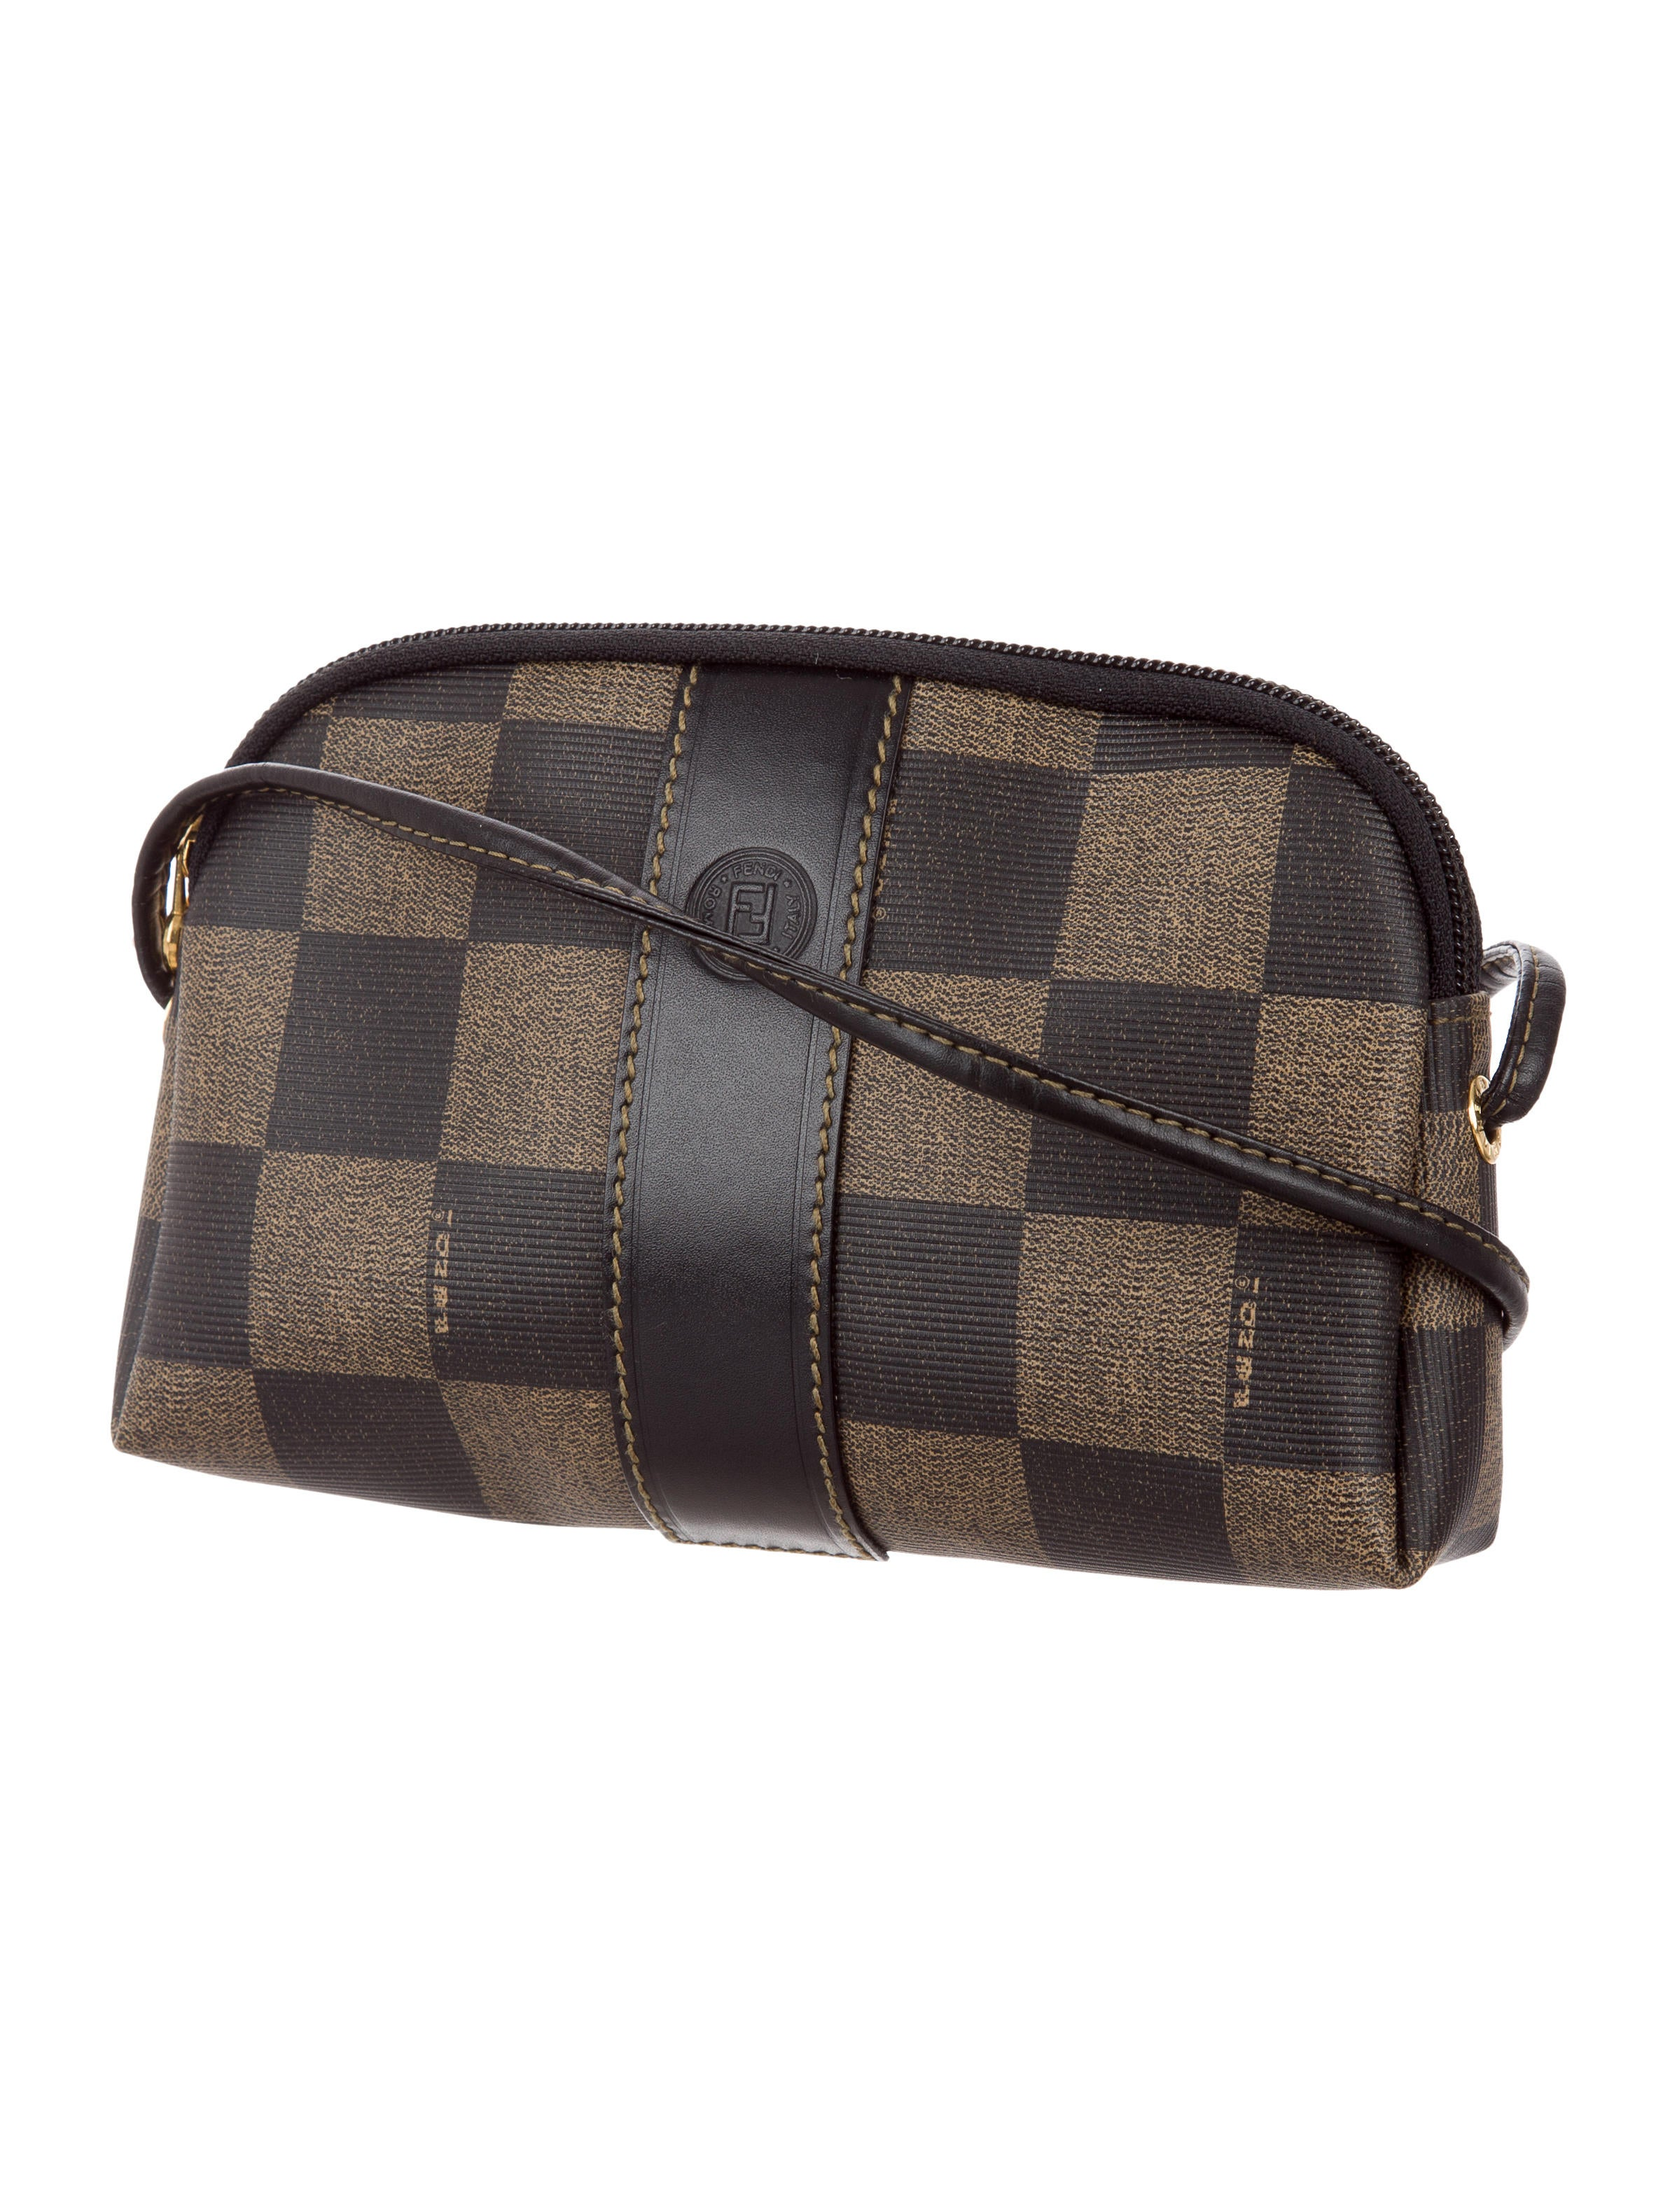 bbcb03604d29 Fendi Checkered Handbags | Stanford Center for Opportunity Policy in ...